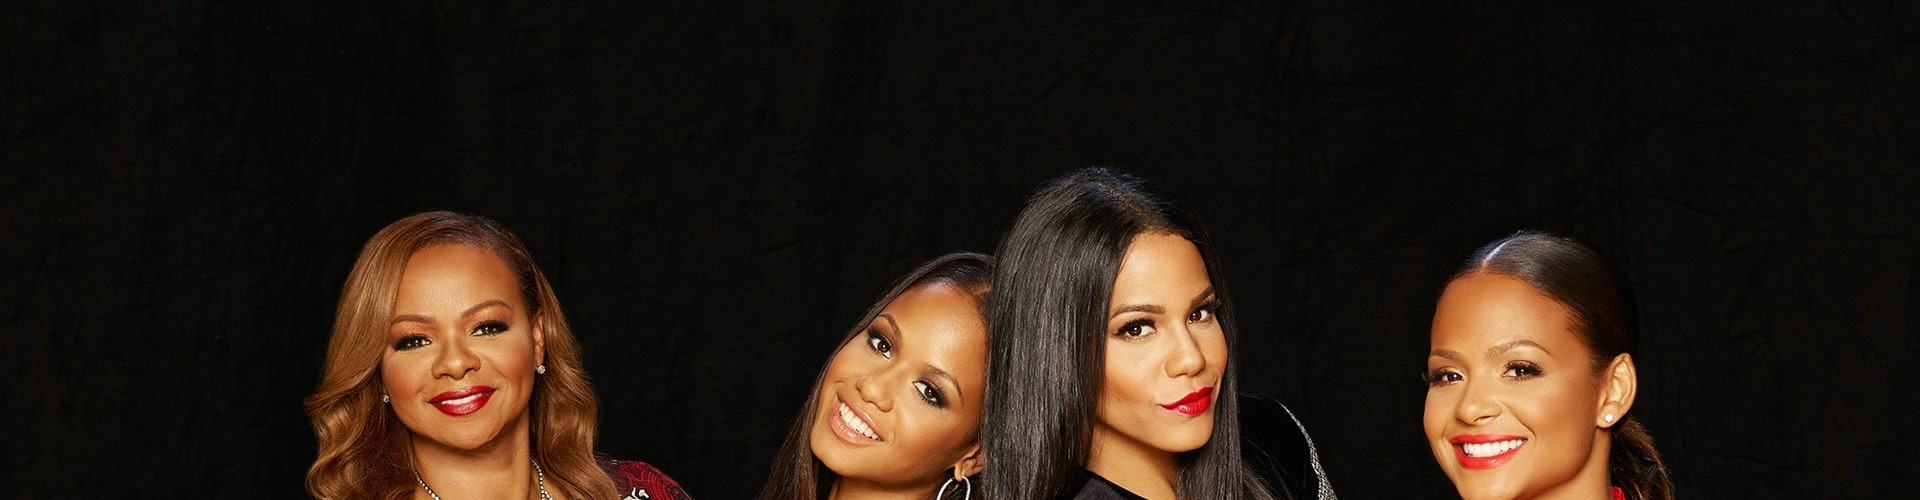 Watch Christina Milian: Turned Up Online